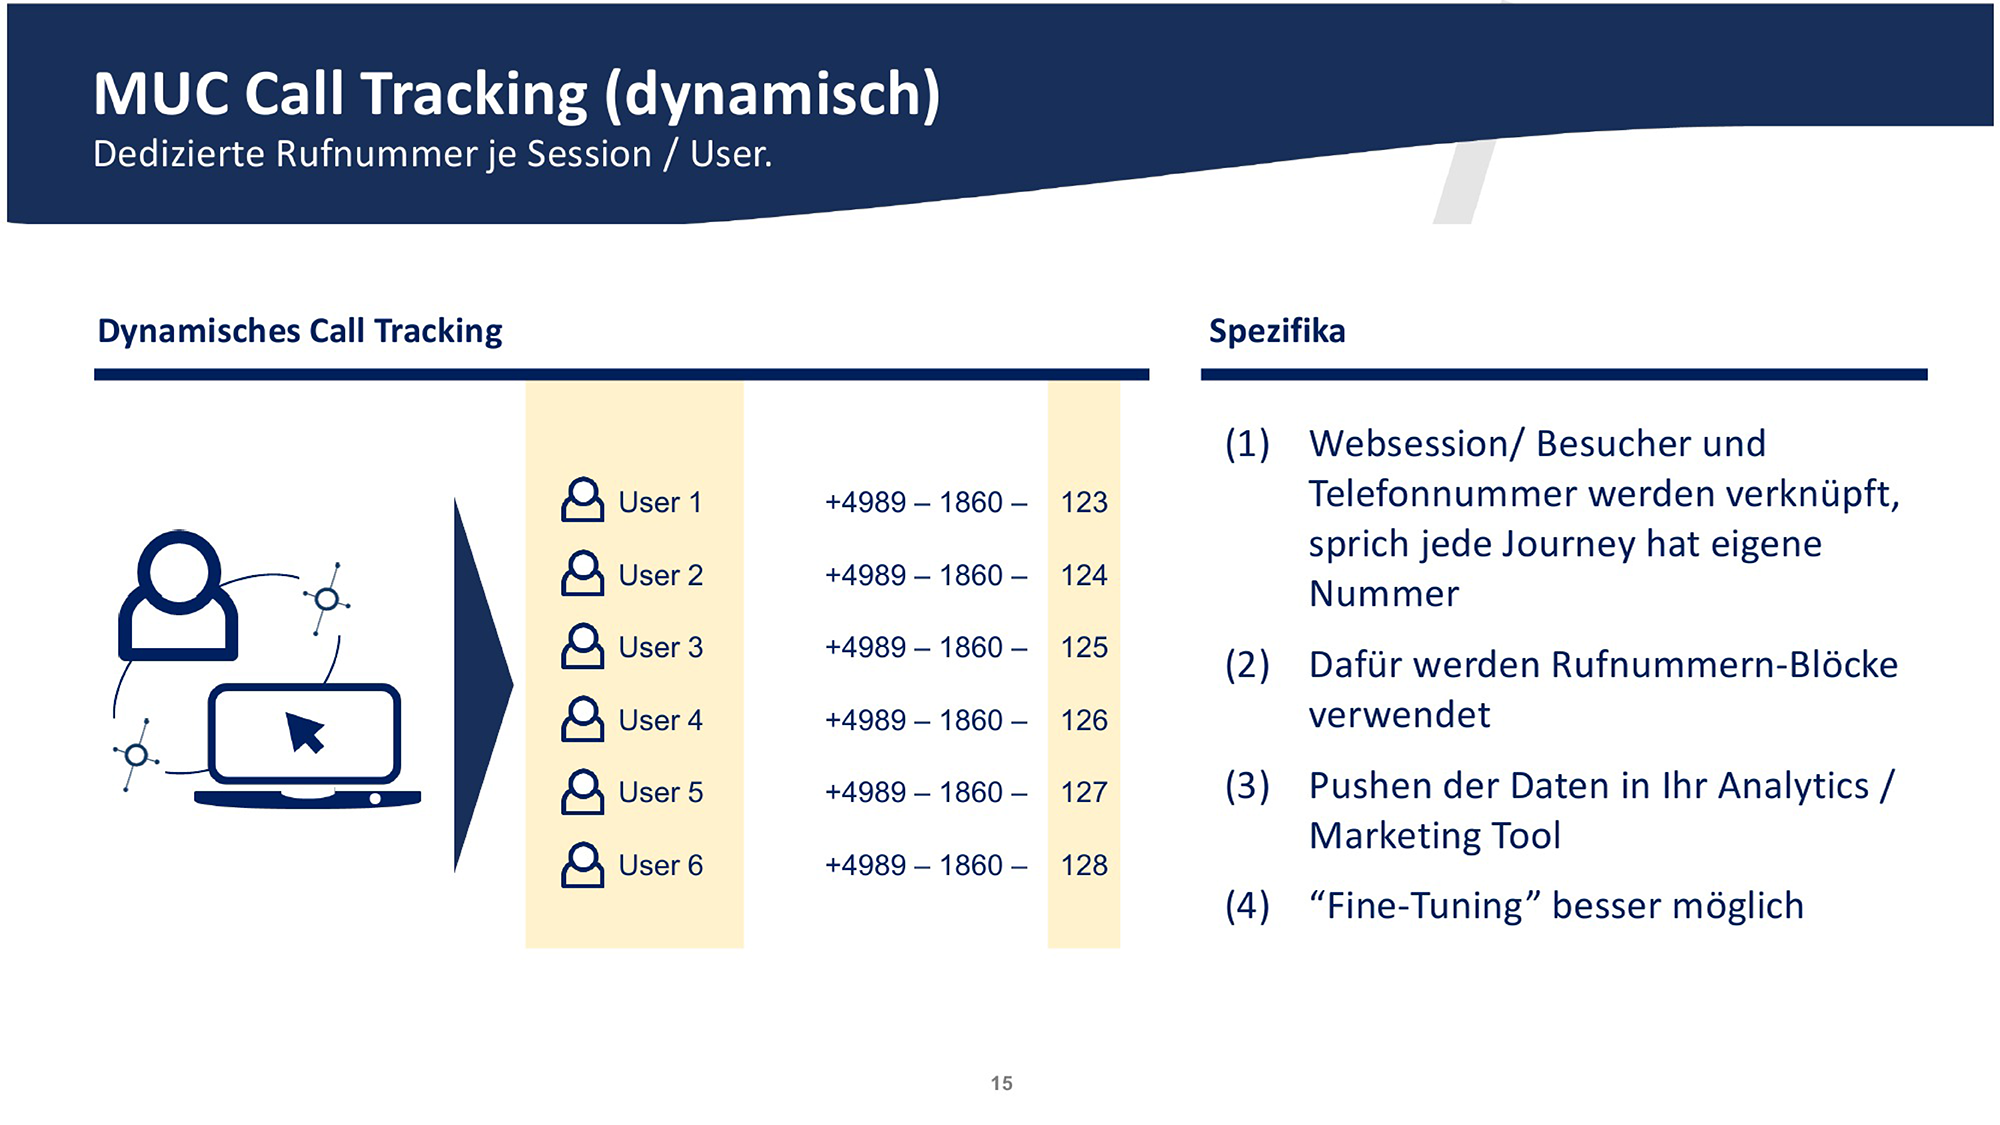 Dynamisches Call Tracking: Jede Web-Journey wird getrackt.